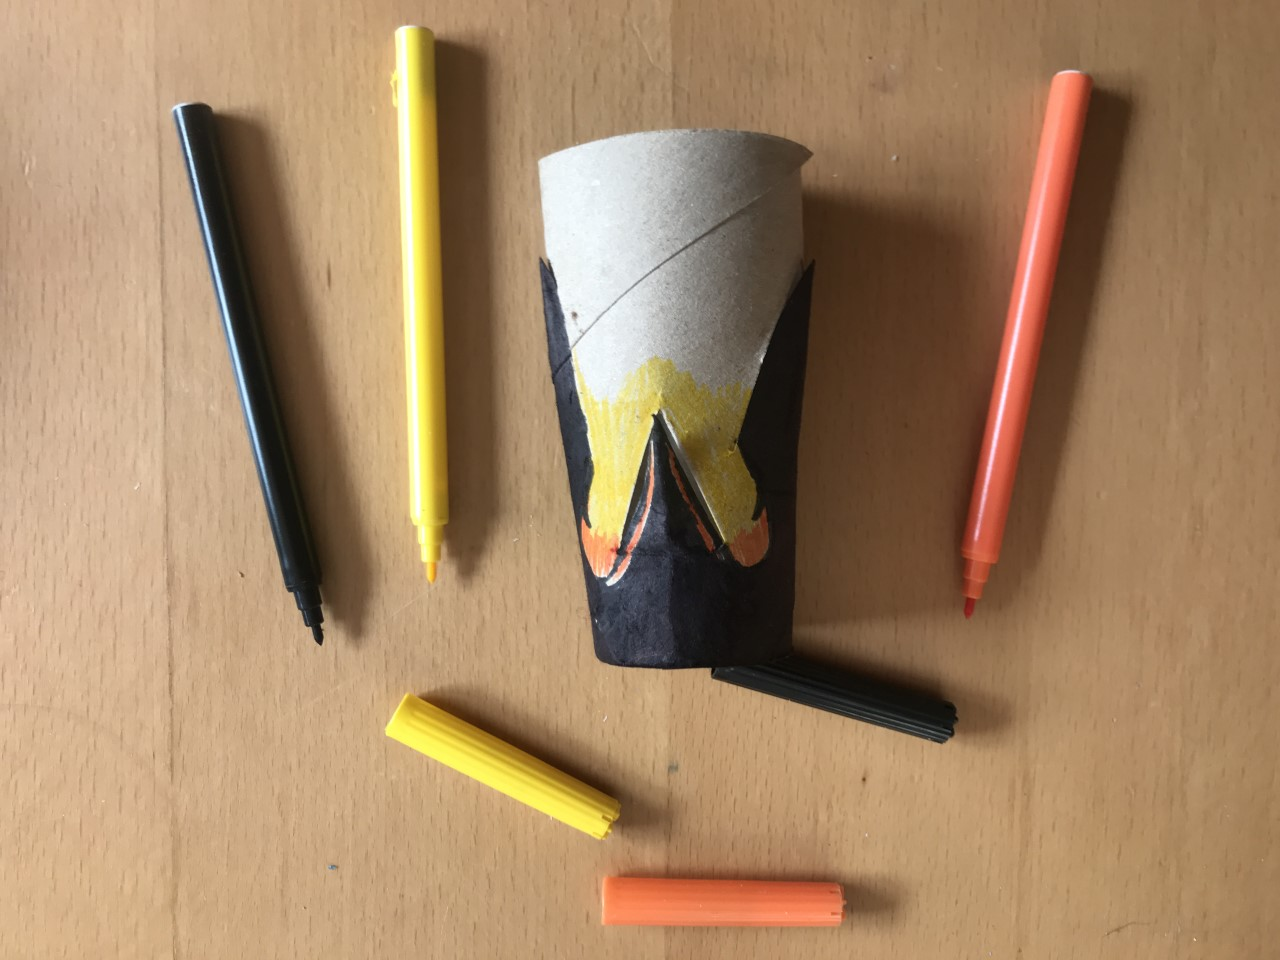 Three felt tip pens, orange, yellow and black, lie next to a tube coloured to look like a penguin